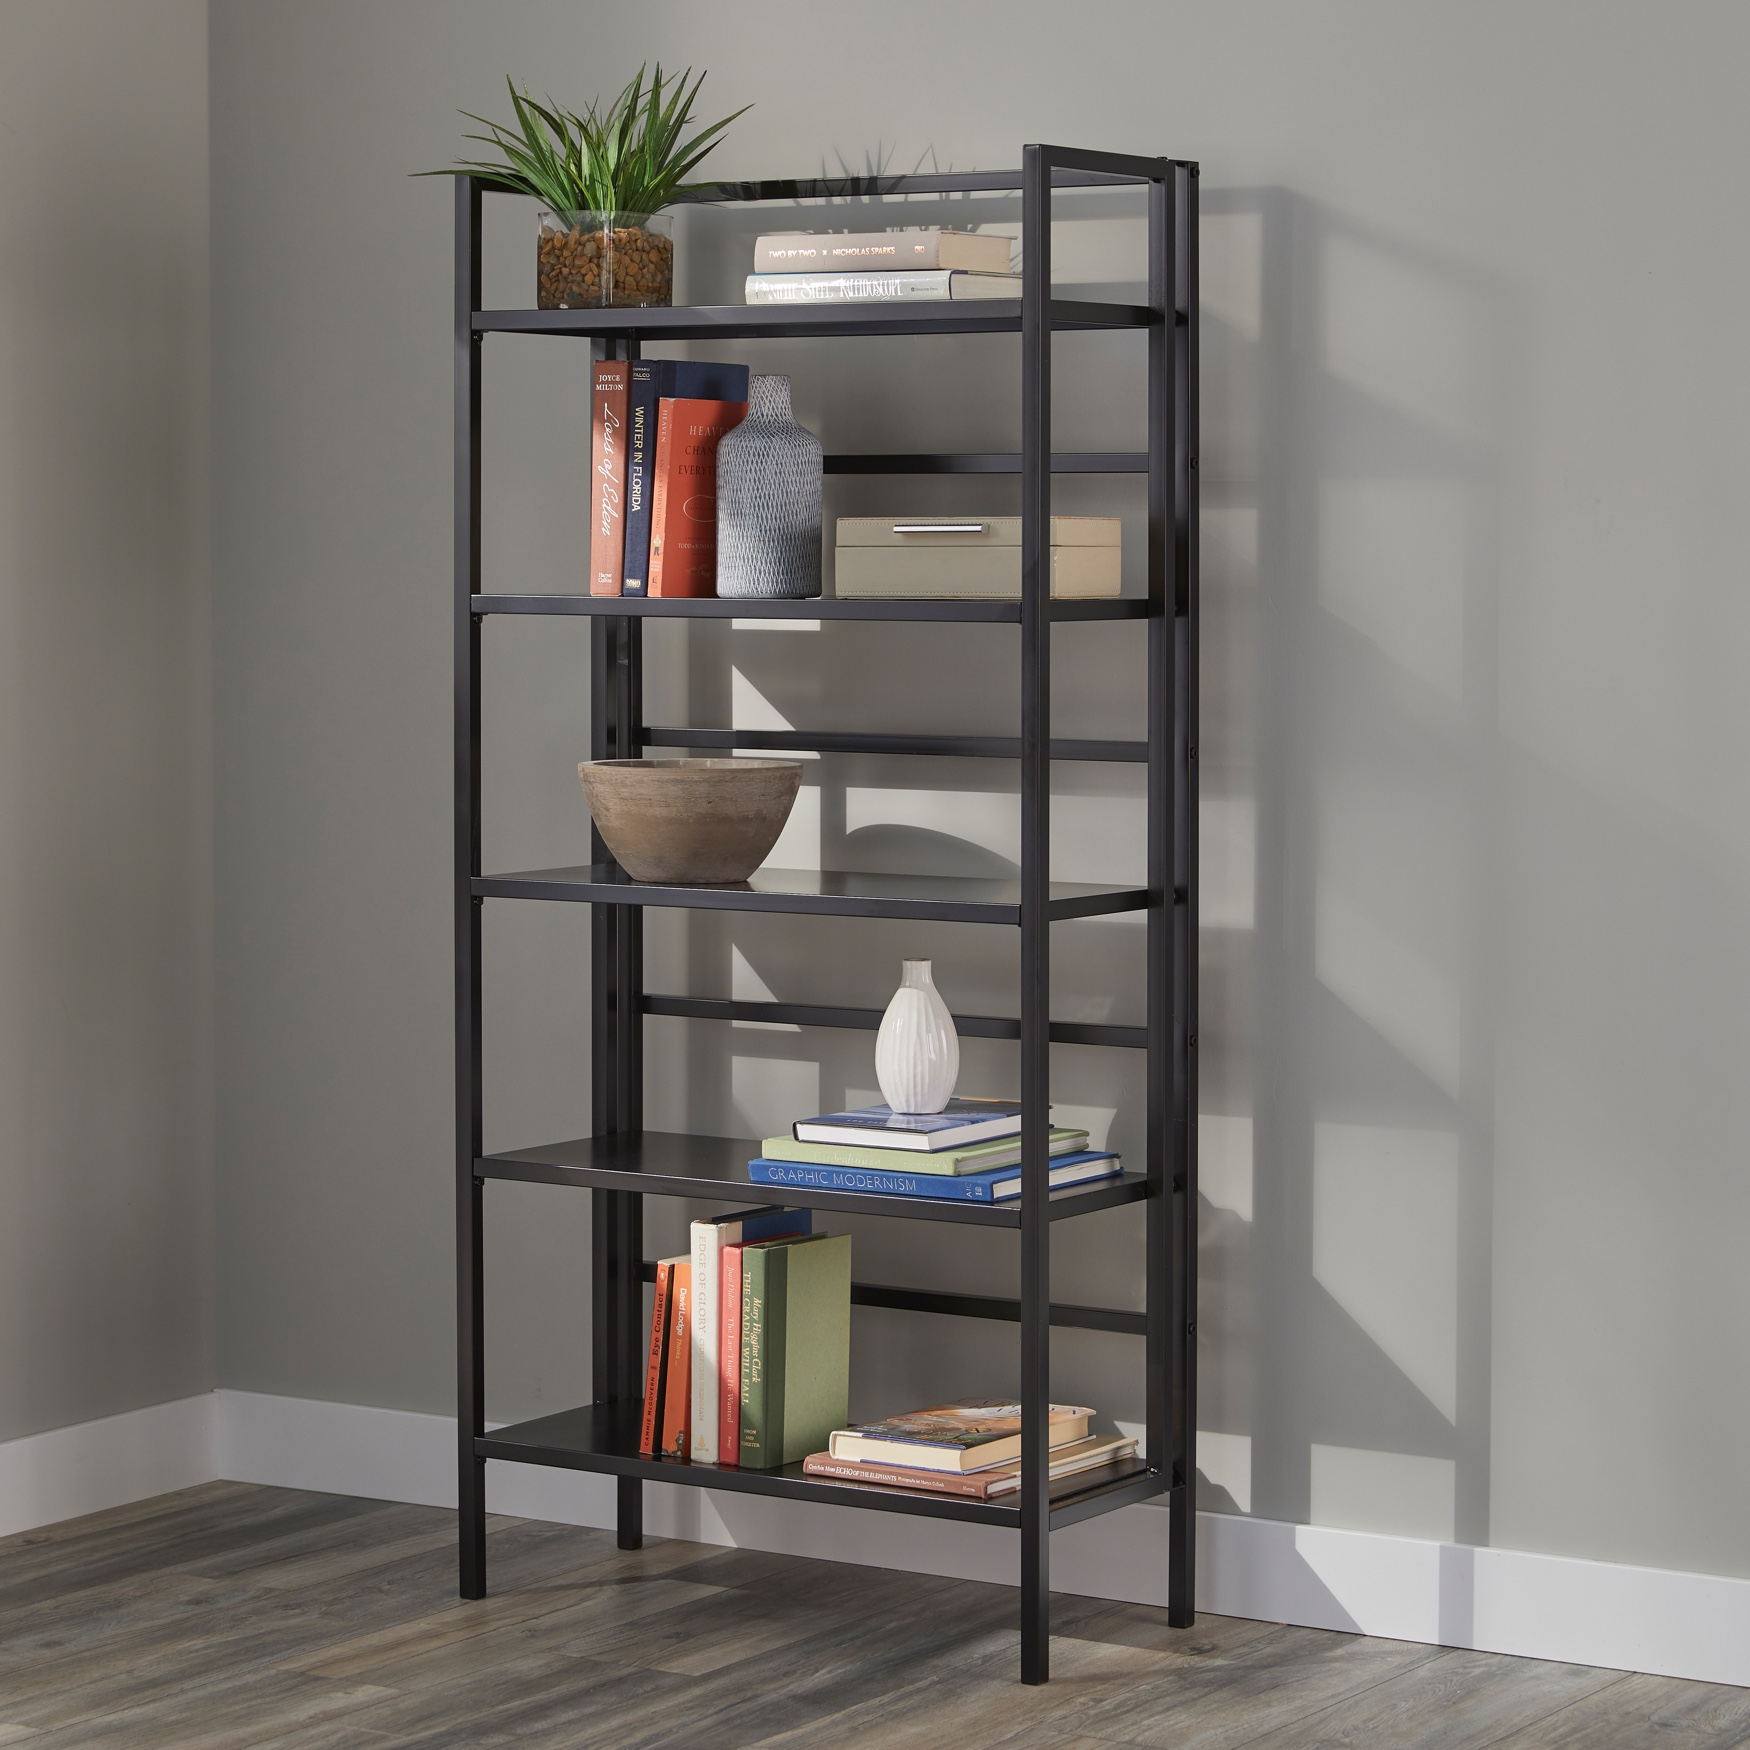 5-Tier Folded Metal Bookshelf, BLACK